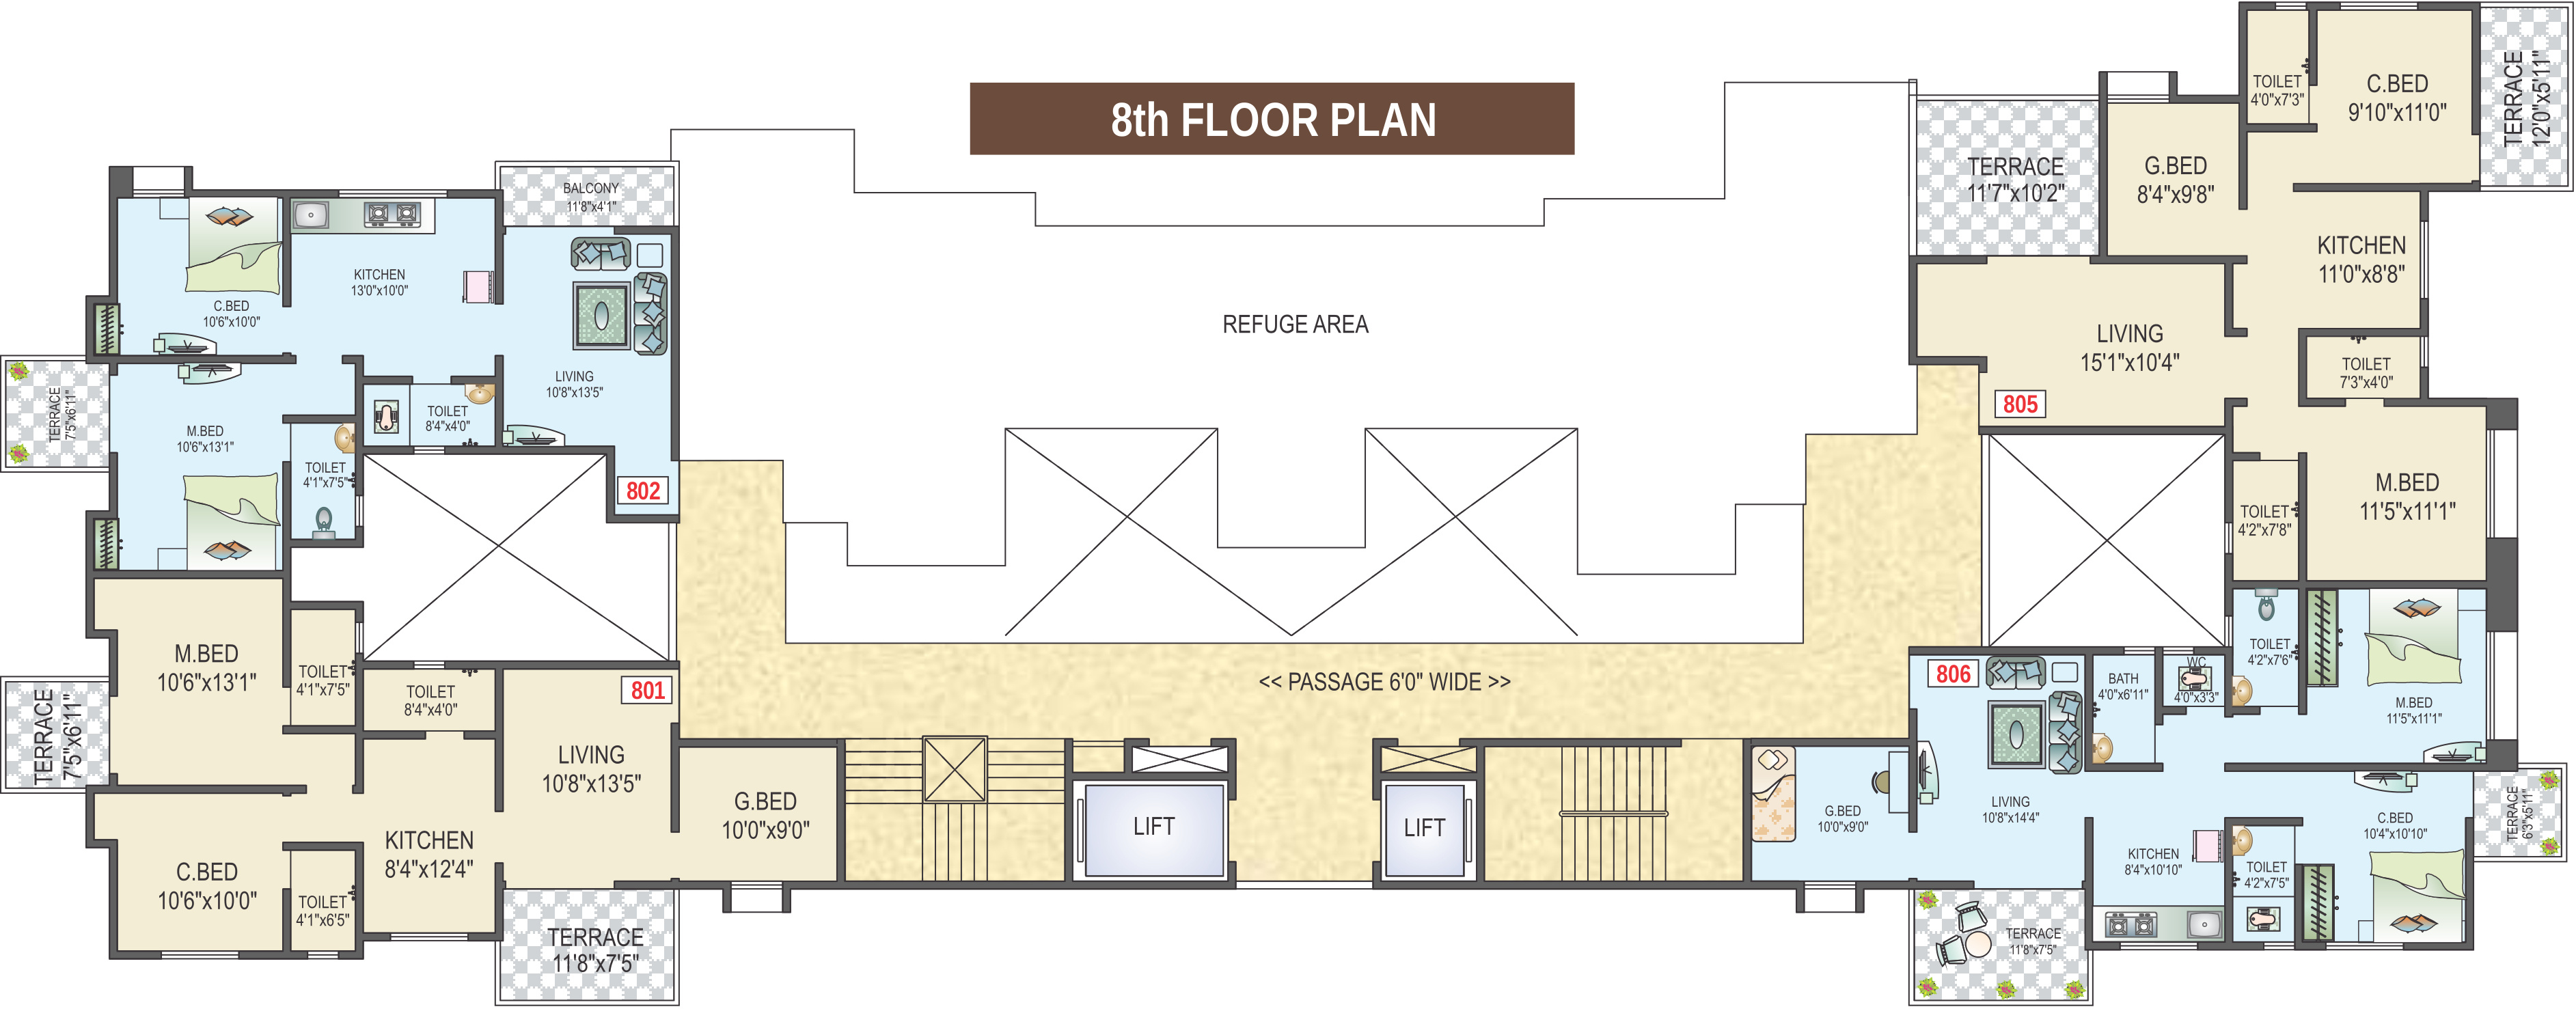 Gt mangal dhaara in tathawade pune price location map for Gt issa floor plans